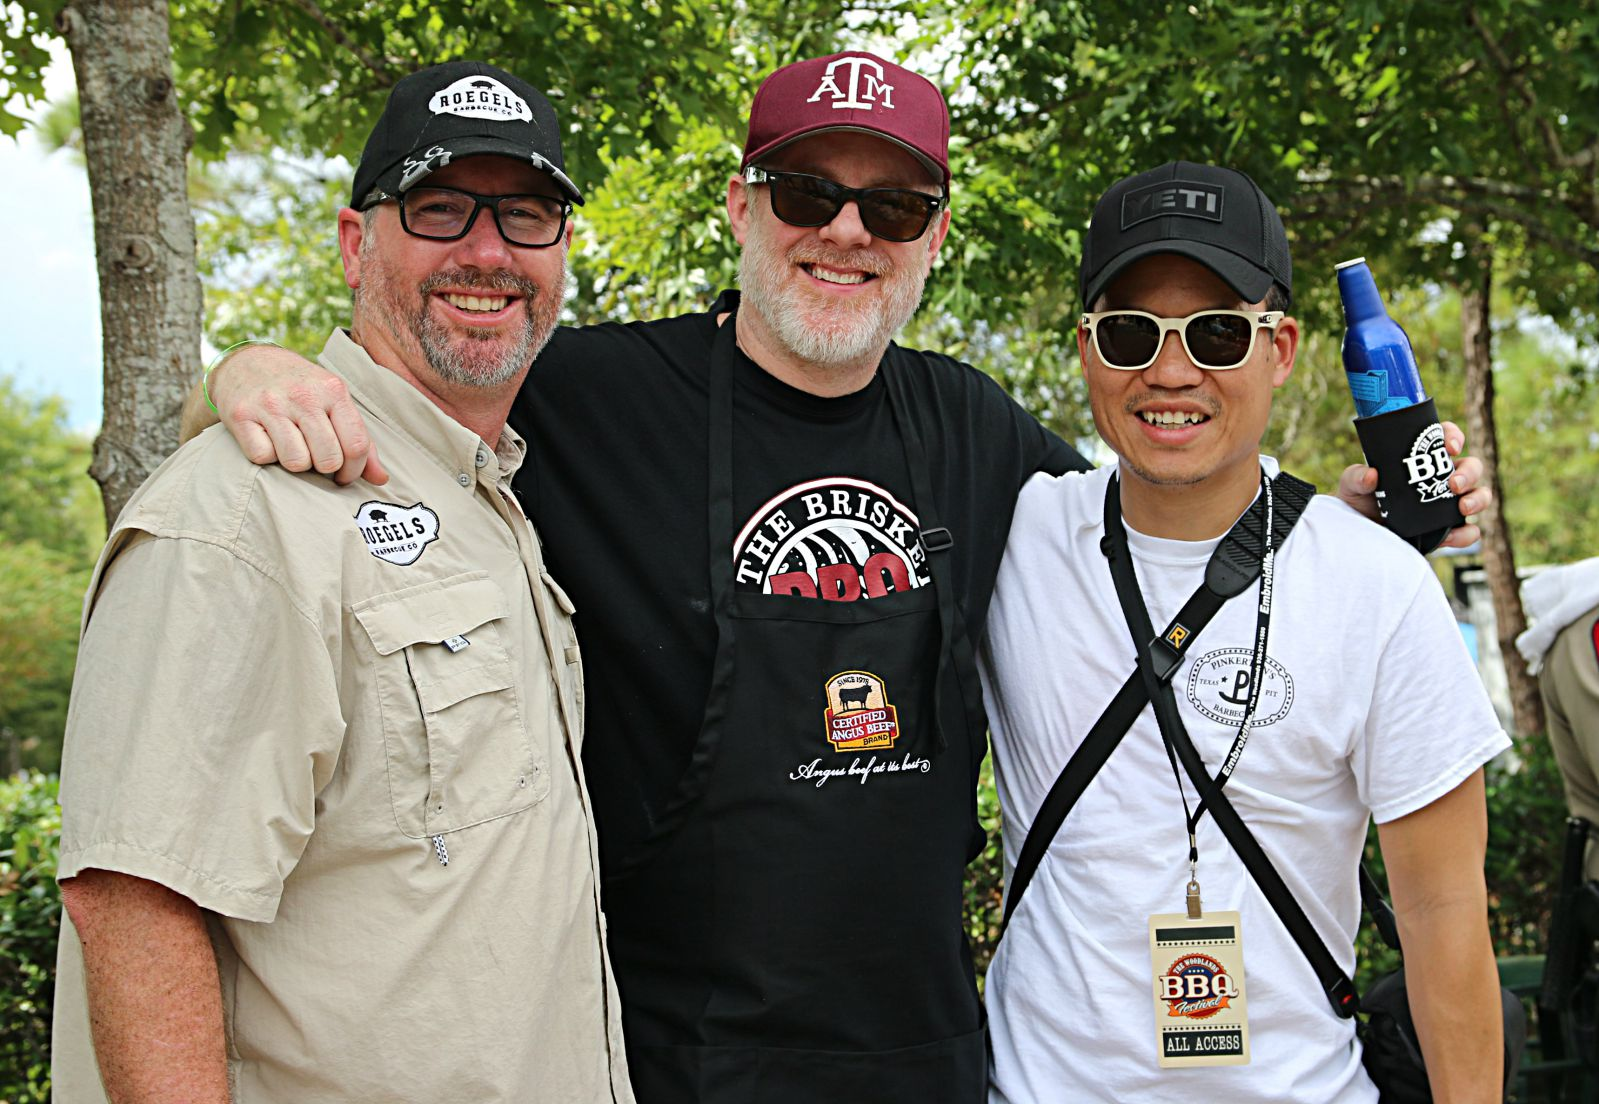 Russell Roegels, Wayne Kammerl, and Jimmy Ho at The Woodlands BBQ Fest 2016